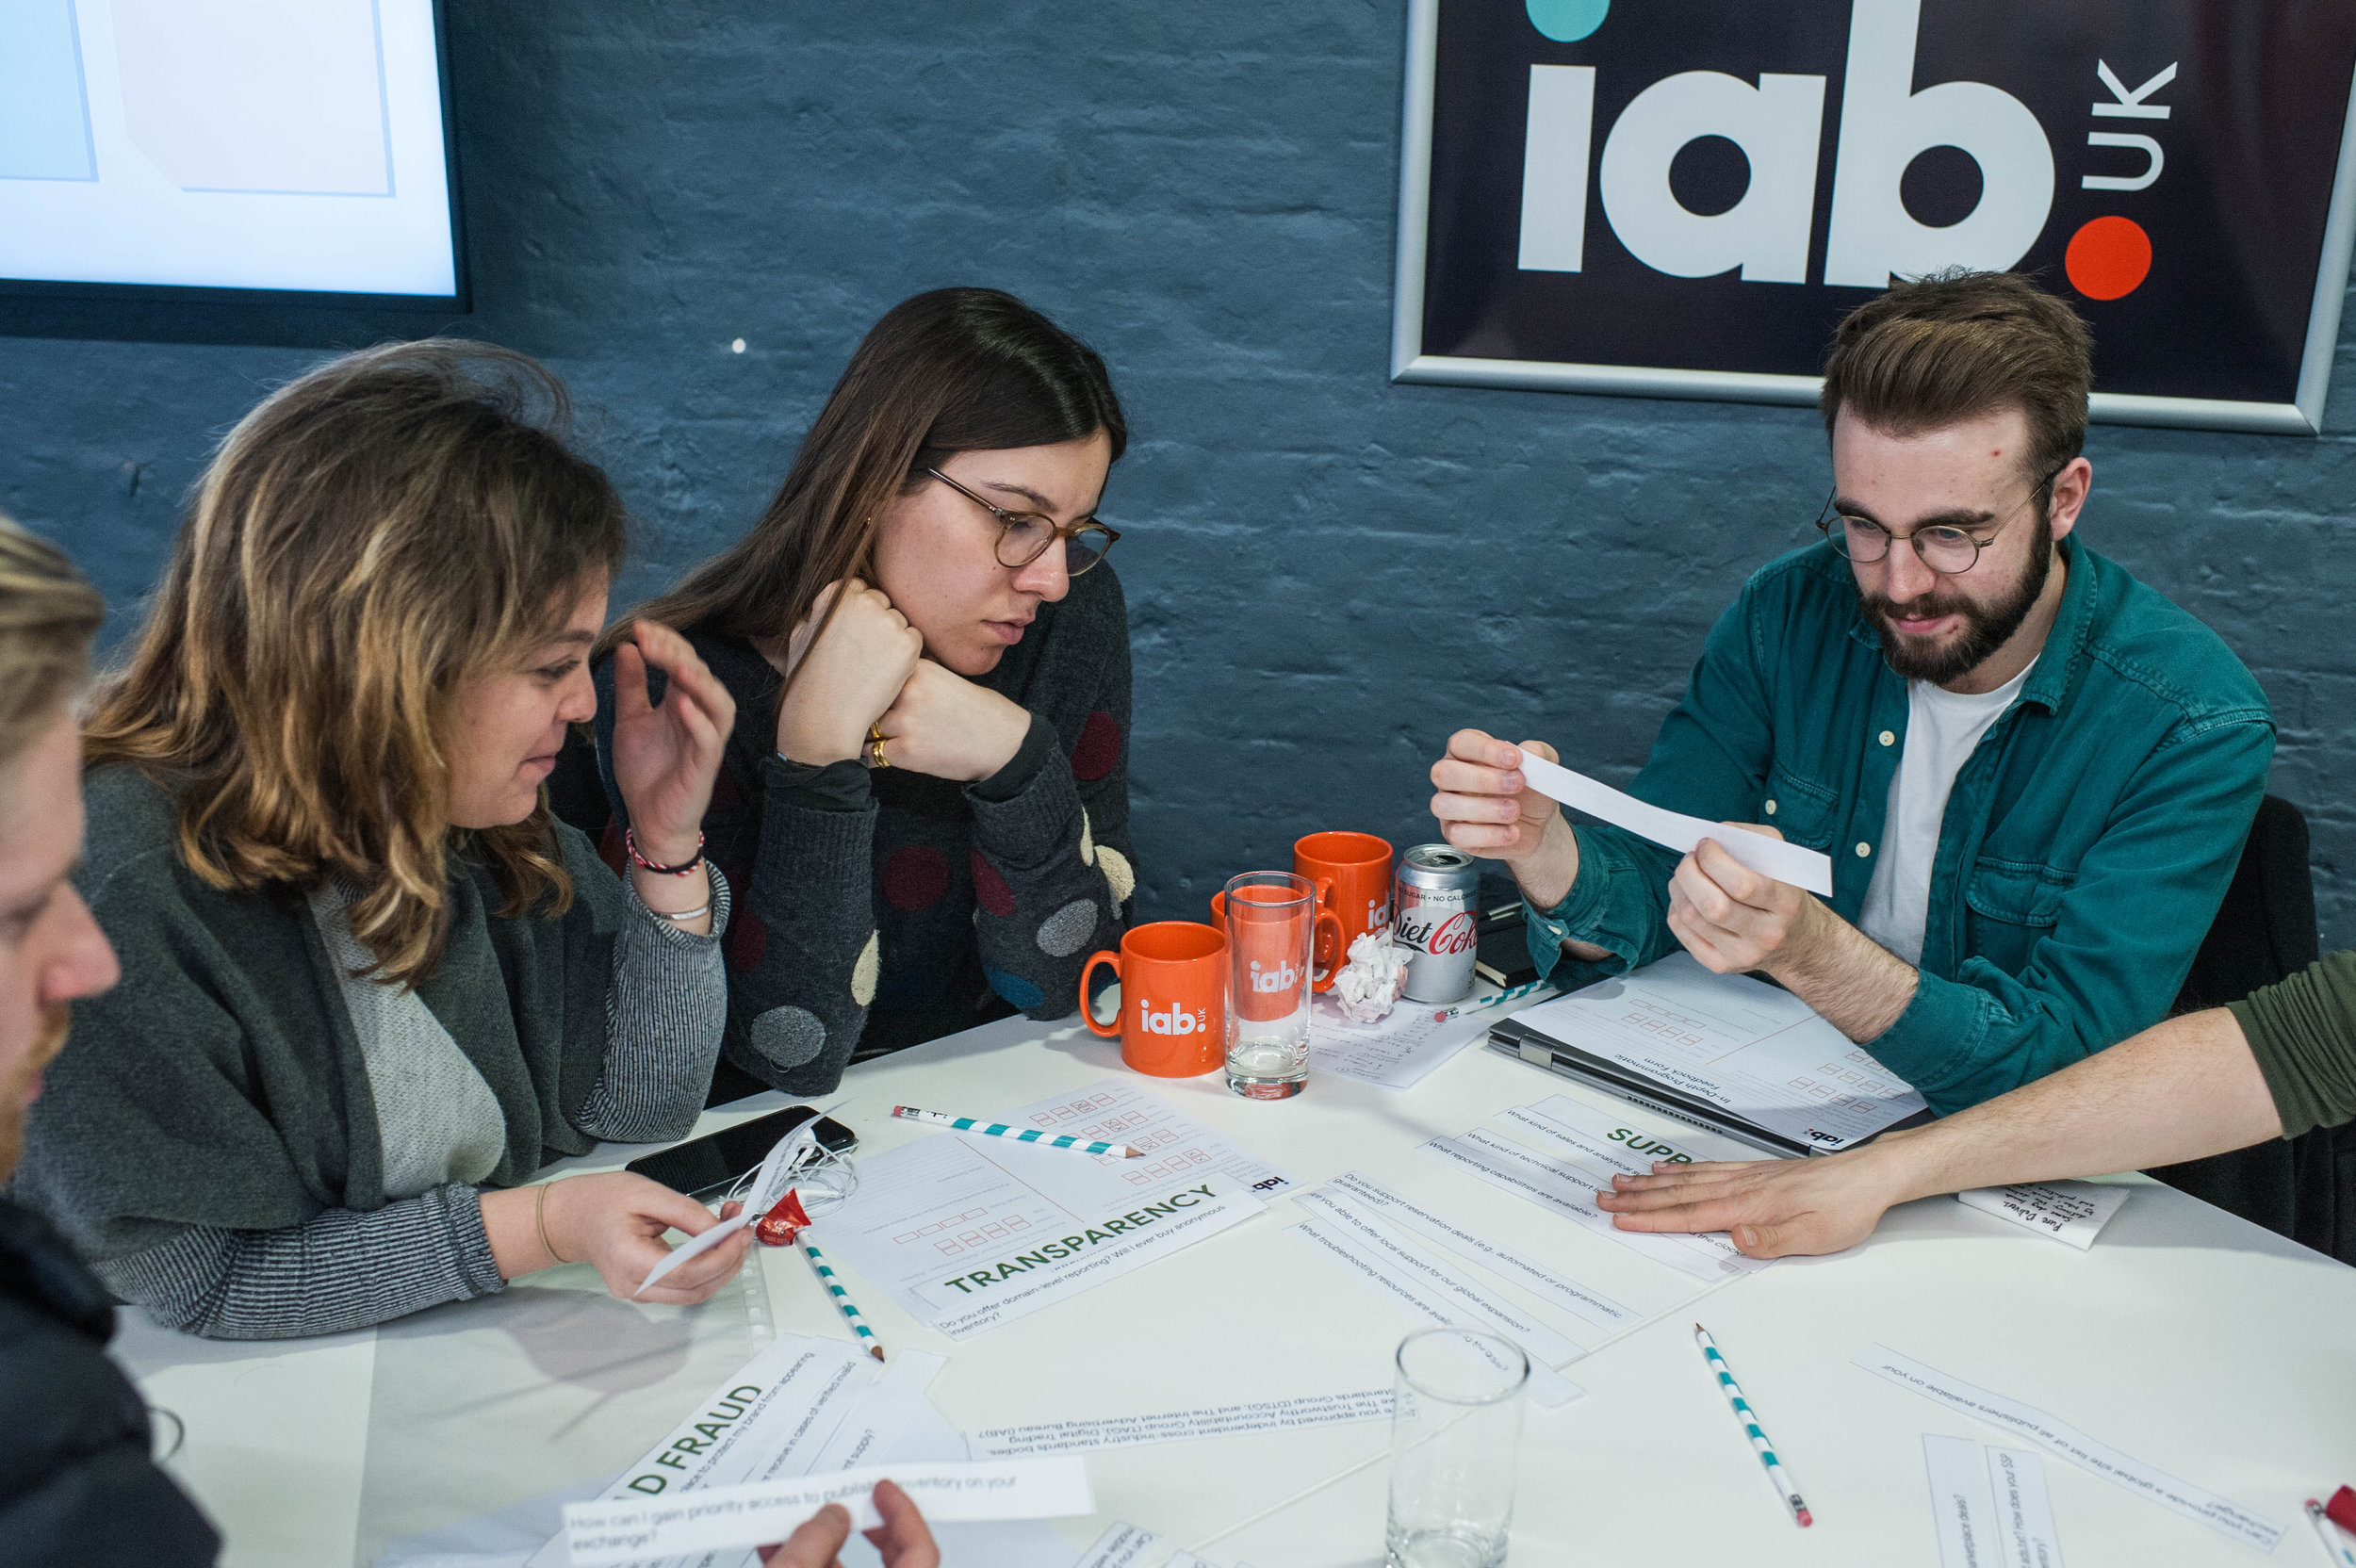 IAB Uk_Incidental Shots_SM (272 of 312).jpg